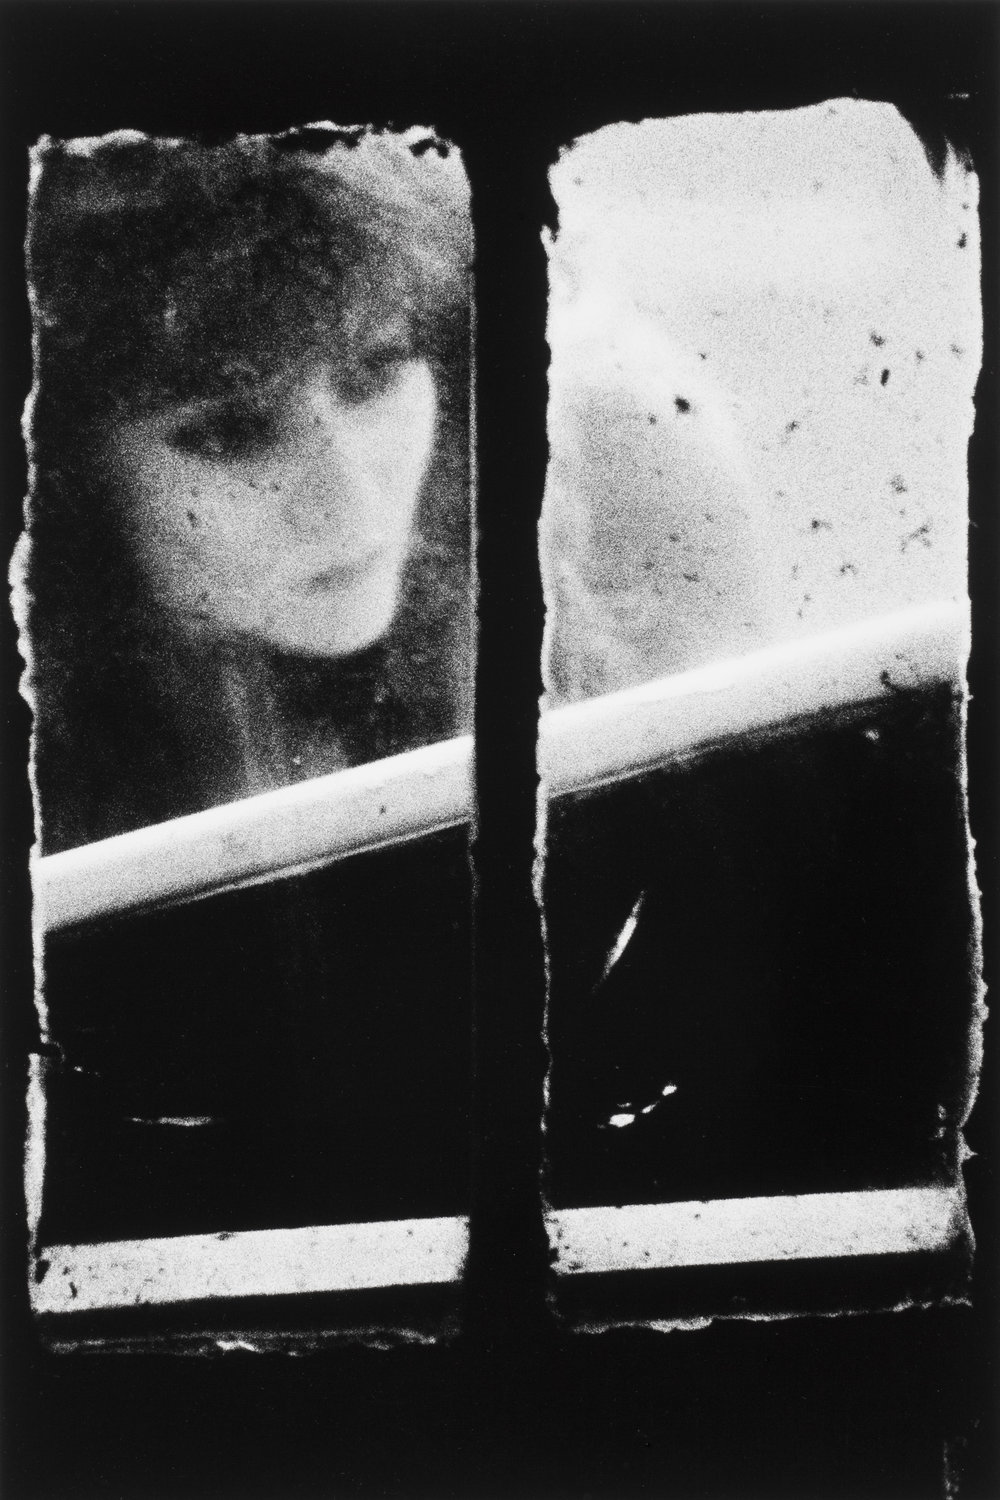 Merry Alpern, Dirty Windows Series #19, 1994, International Center of Photography, Gift of David and Kim Schrader, 2010. © Merry Alpern